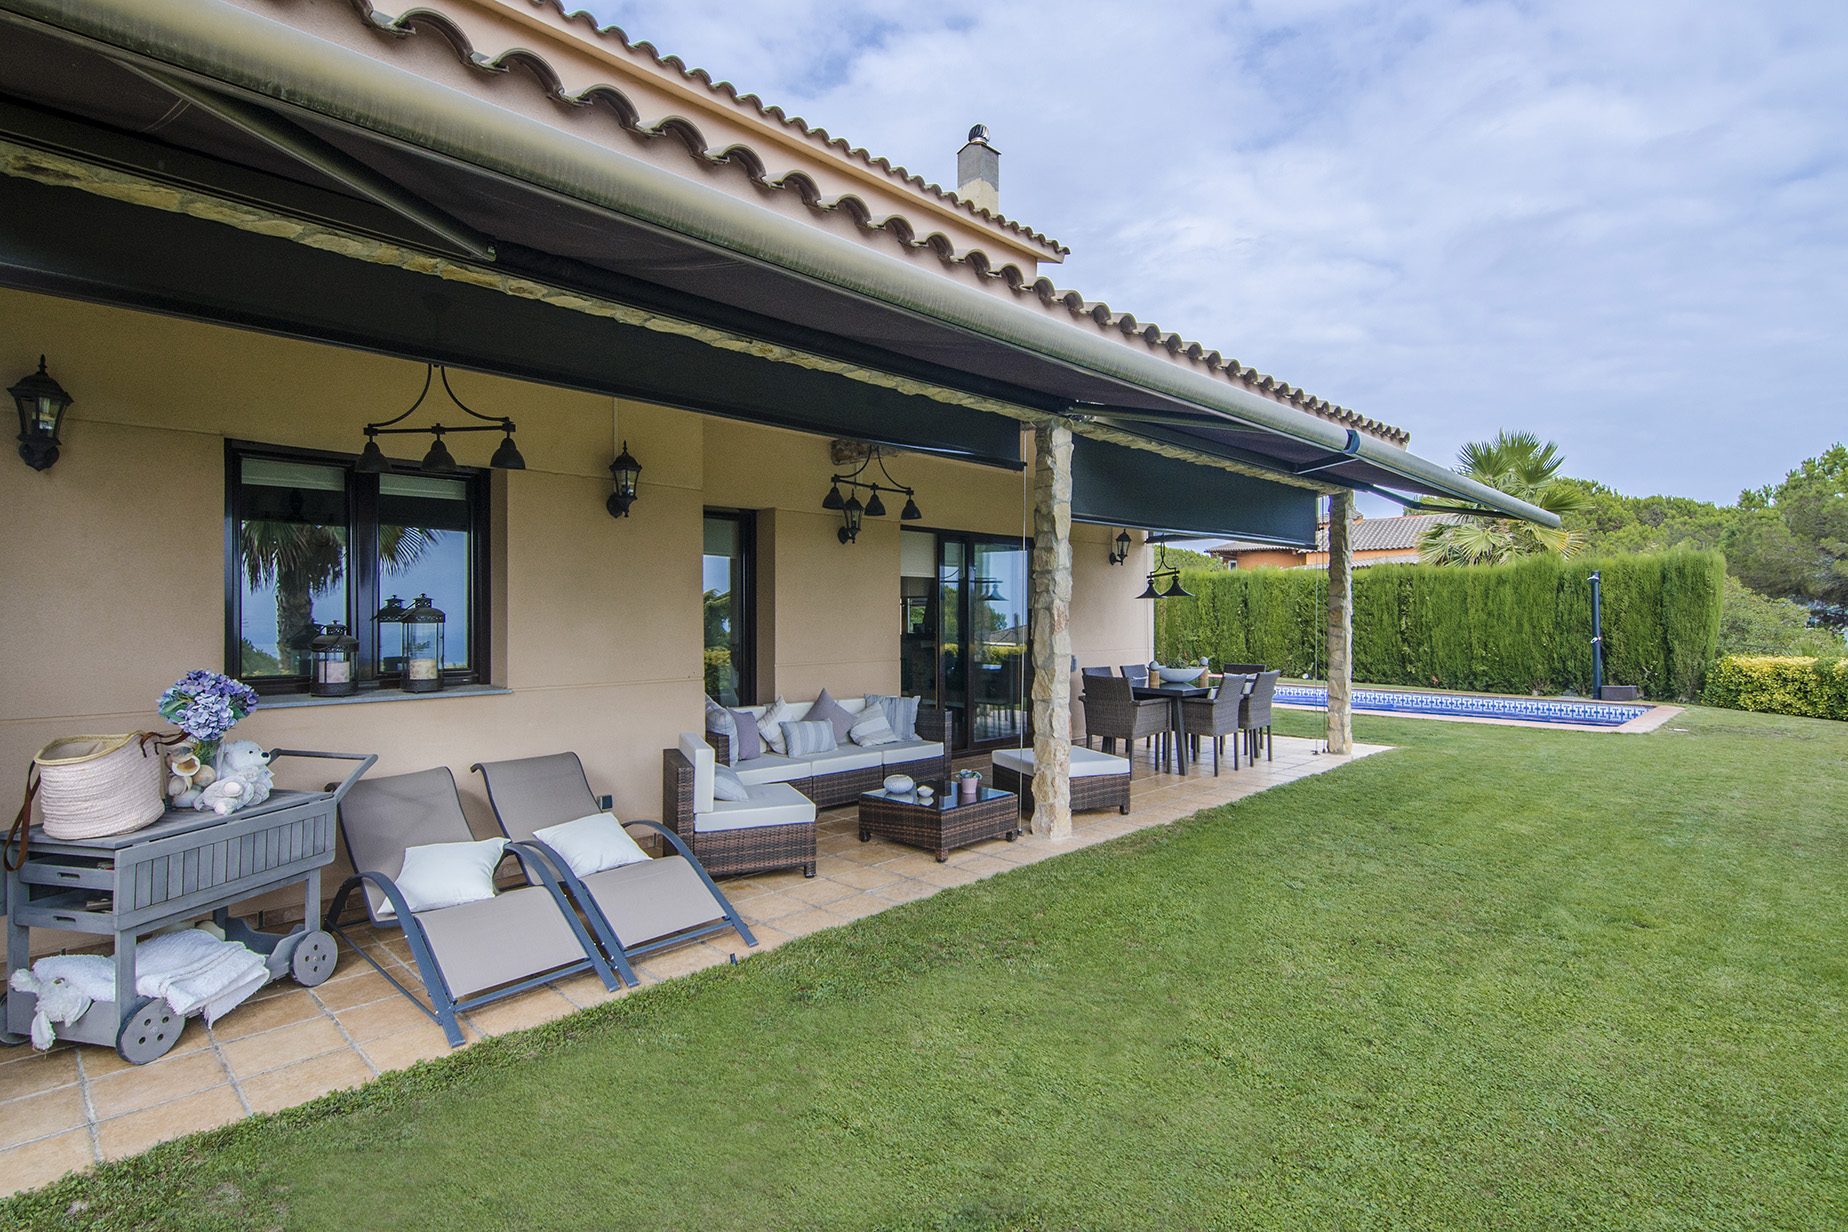 Single Family Home for Sale at To Buy the Perfect Refuge in Cabrils Cabrils, Barcelona, 08348 Spain